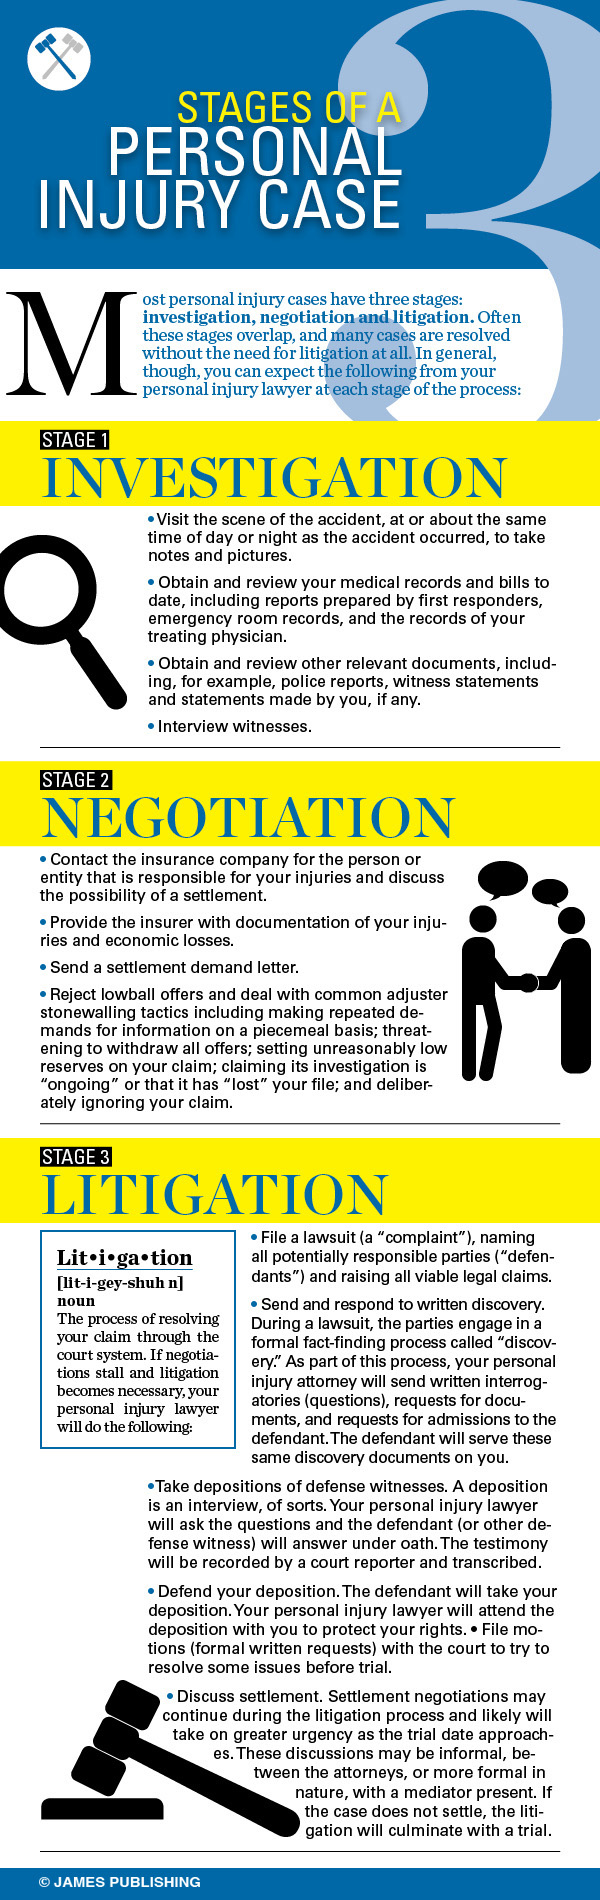 Stages of a Personal Injury Case Infographic